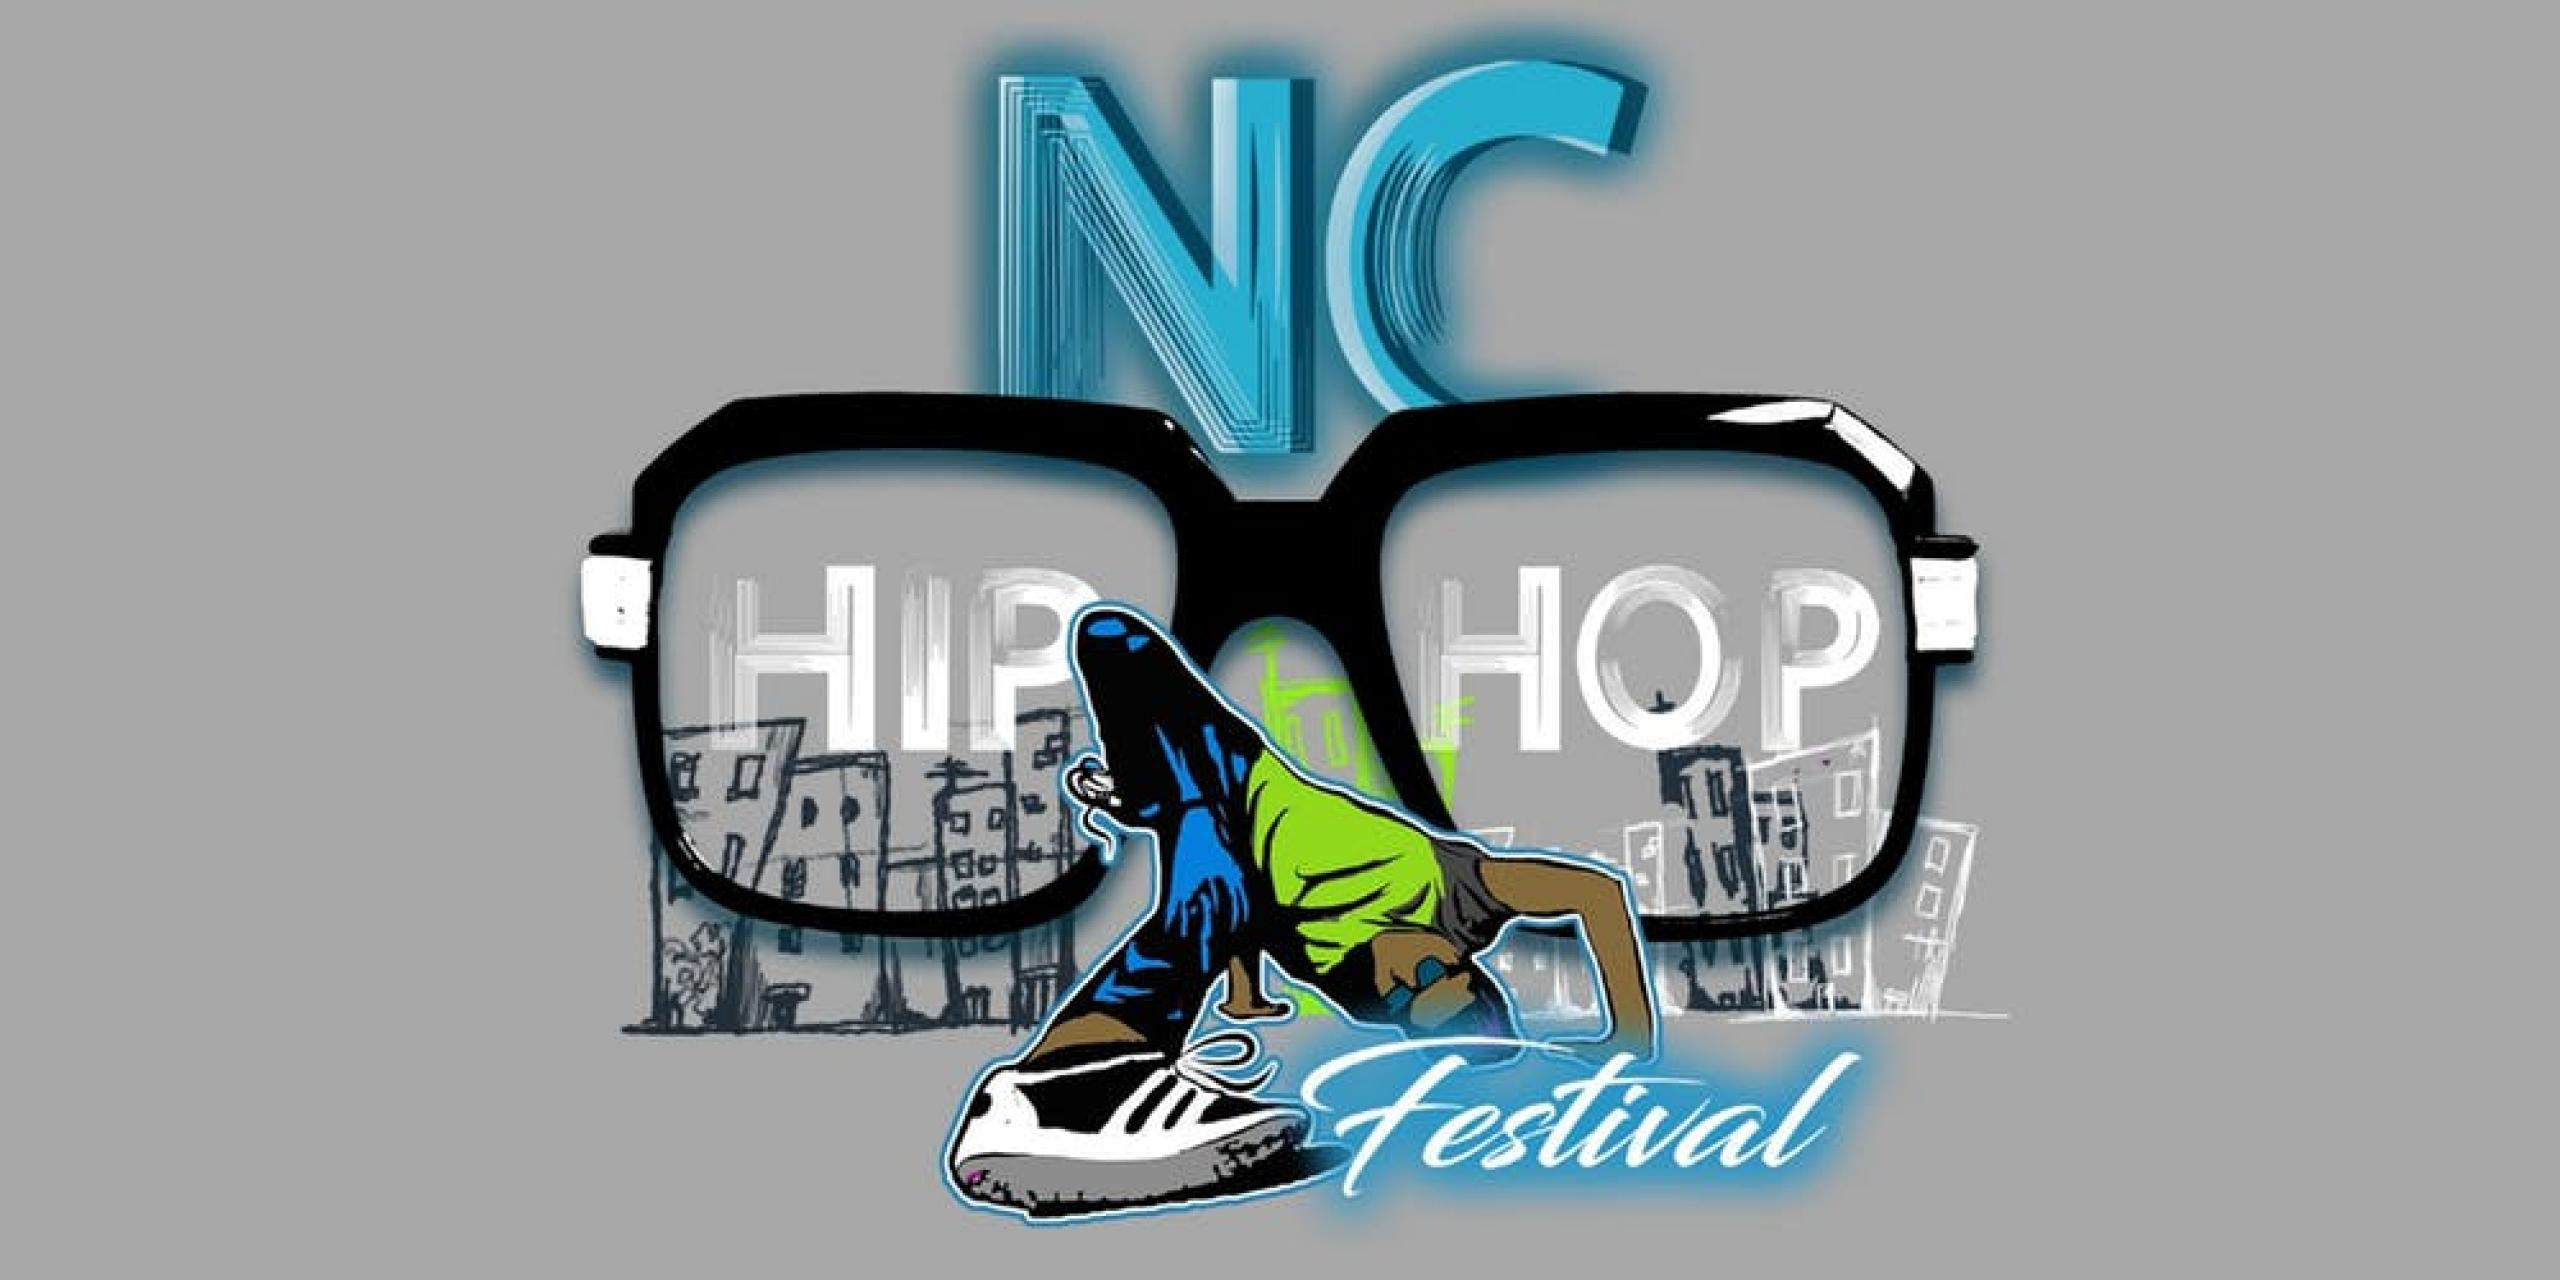 NC HipHop Festival Poster